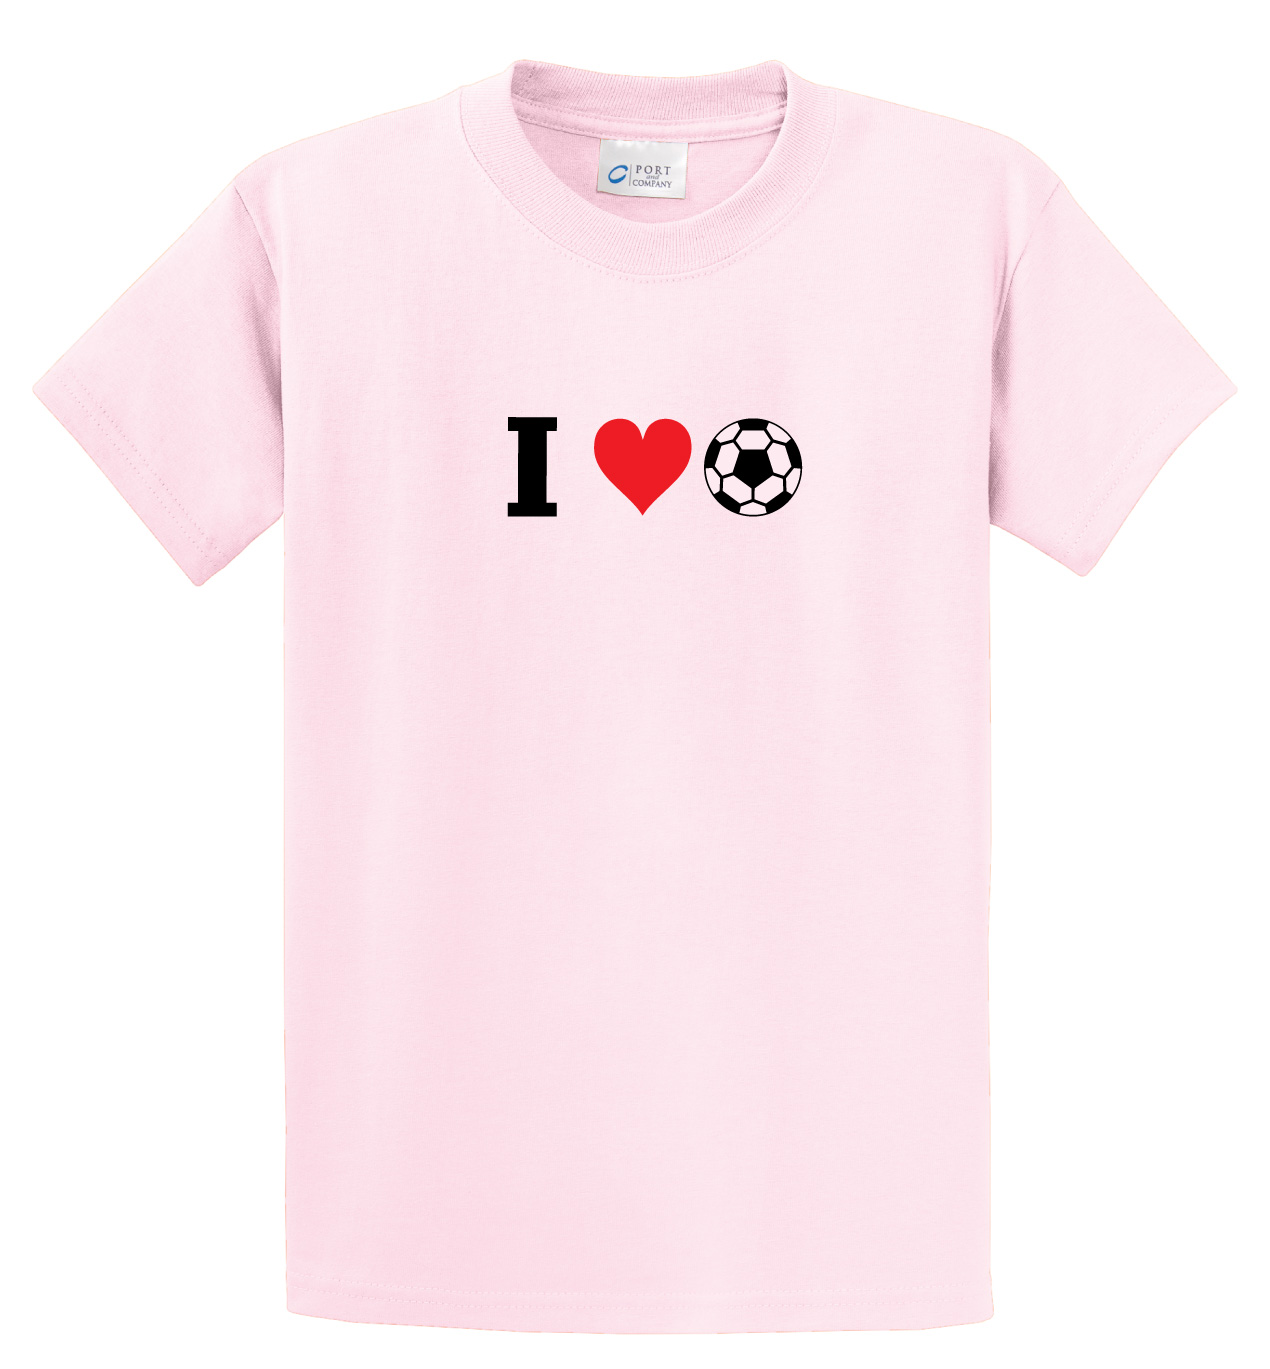 I Love Soccer tee in pink